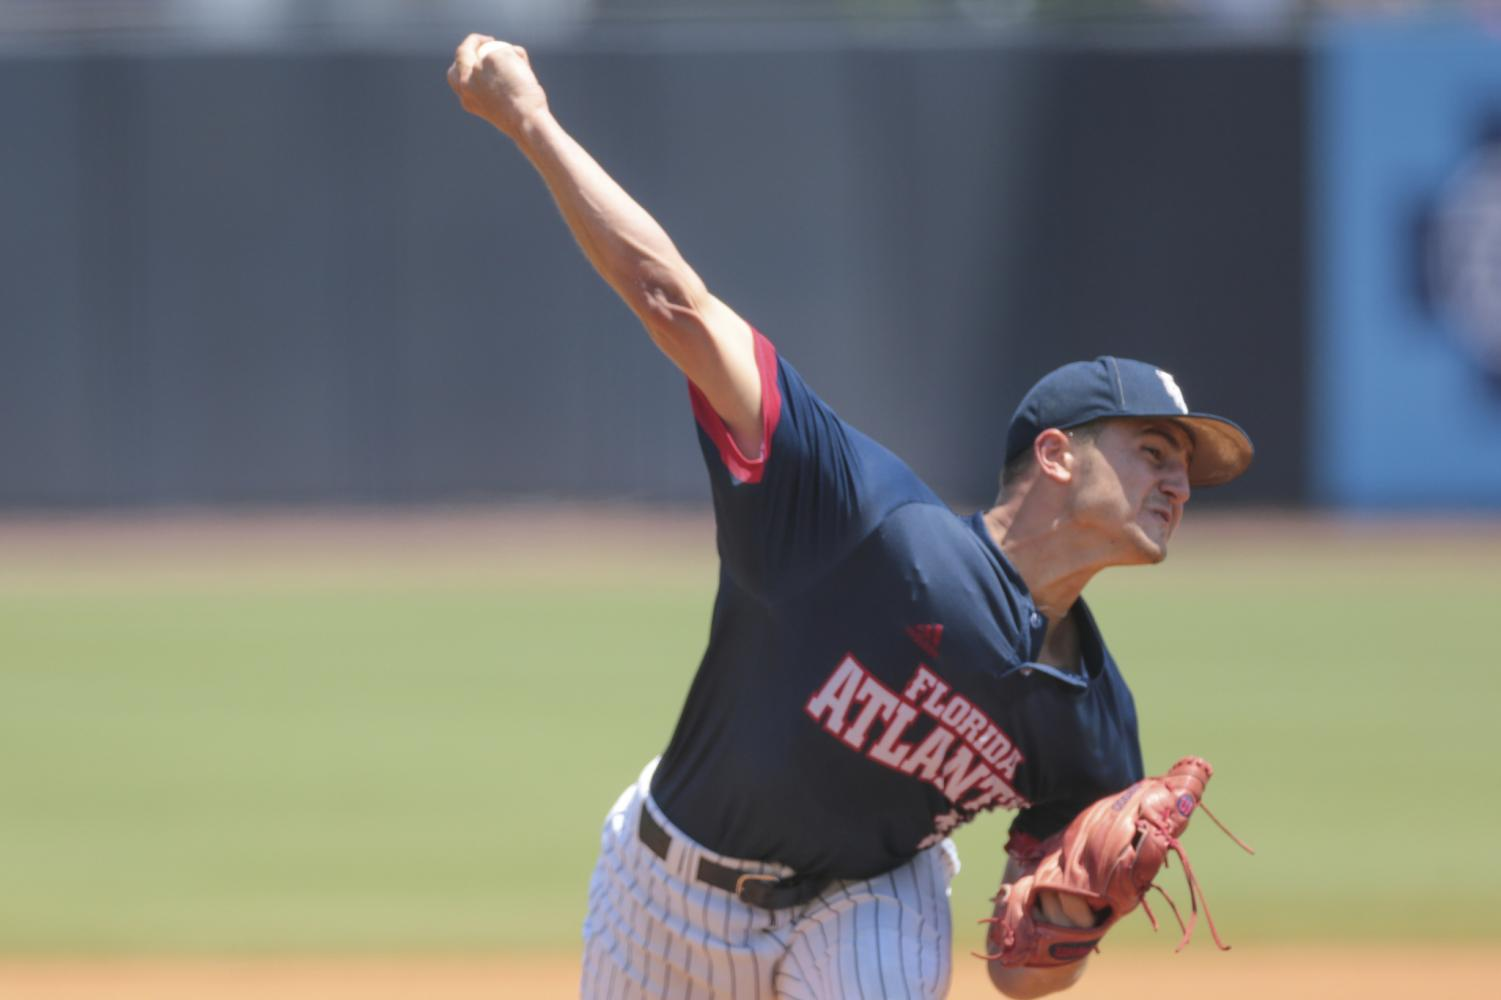 Vince Coletti was third pitcher brought into the game after Mike Ruff and Dylan O'Connell. Jordan Foreman/Conference USA